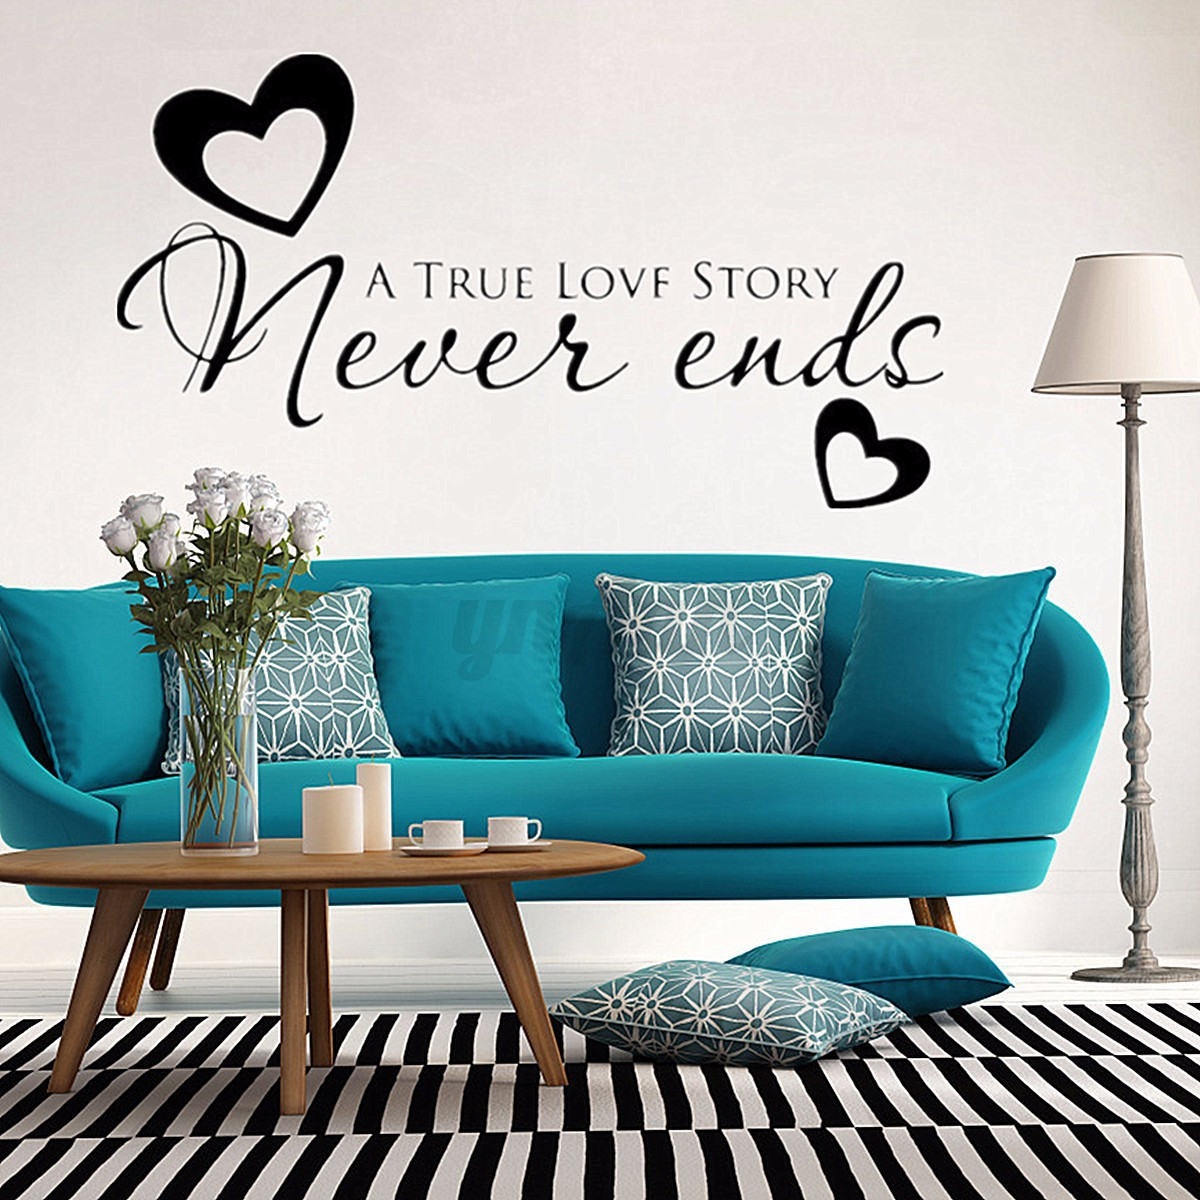 Diy Wall Art Dorm : True love never ends heart wall stickers couple family